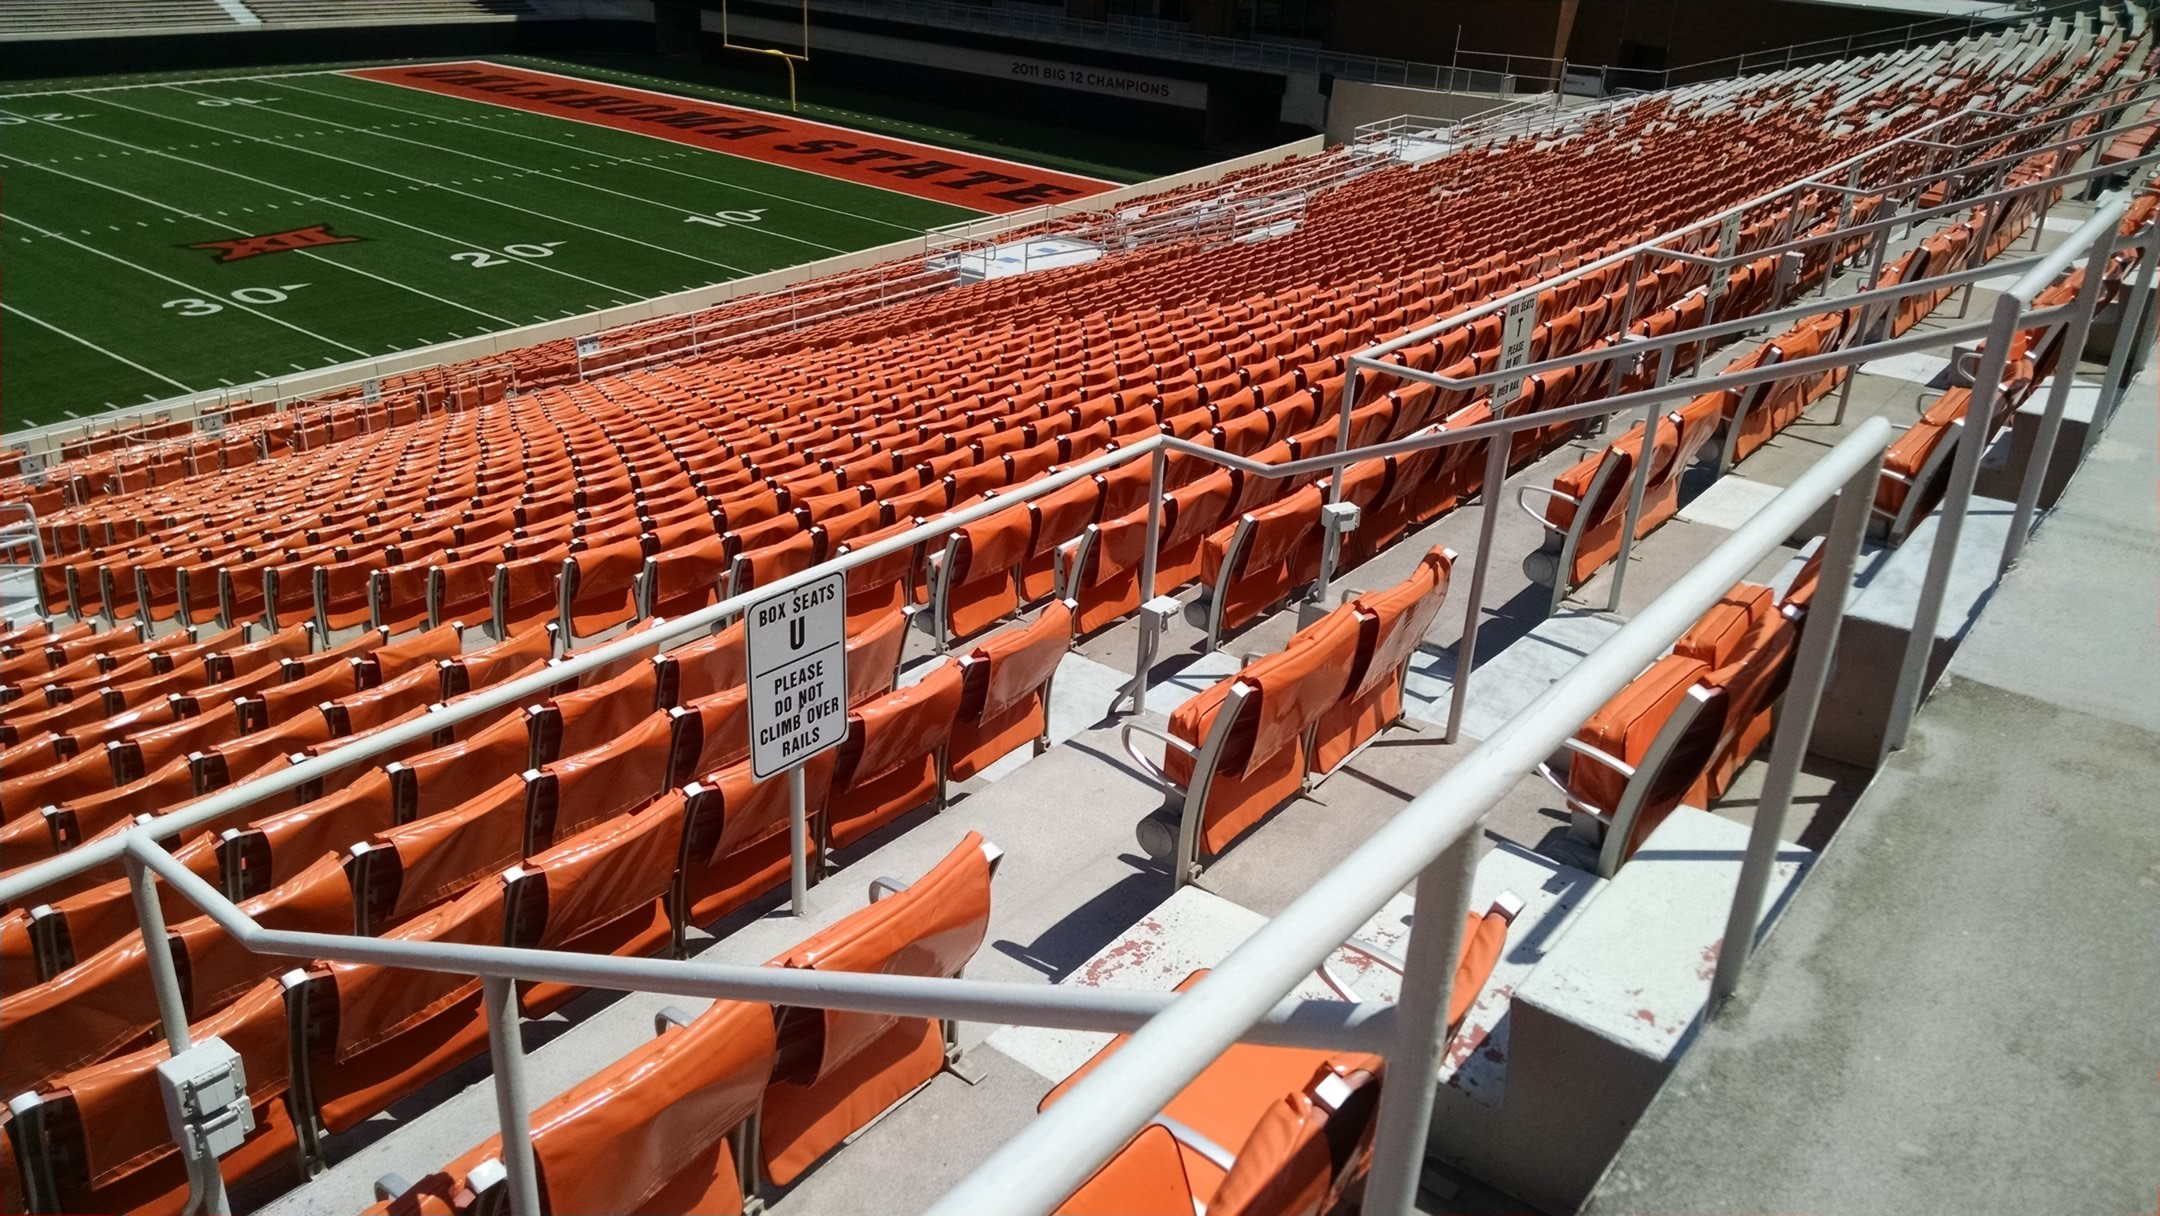 At The Top Of Select 200 Level Sections Along Sidelines Are Box Seats In Addition To Some Best Elevated Views These Areas Provide Fans Extra